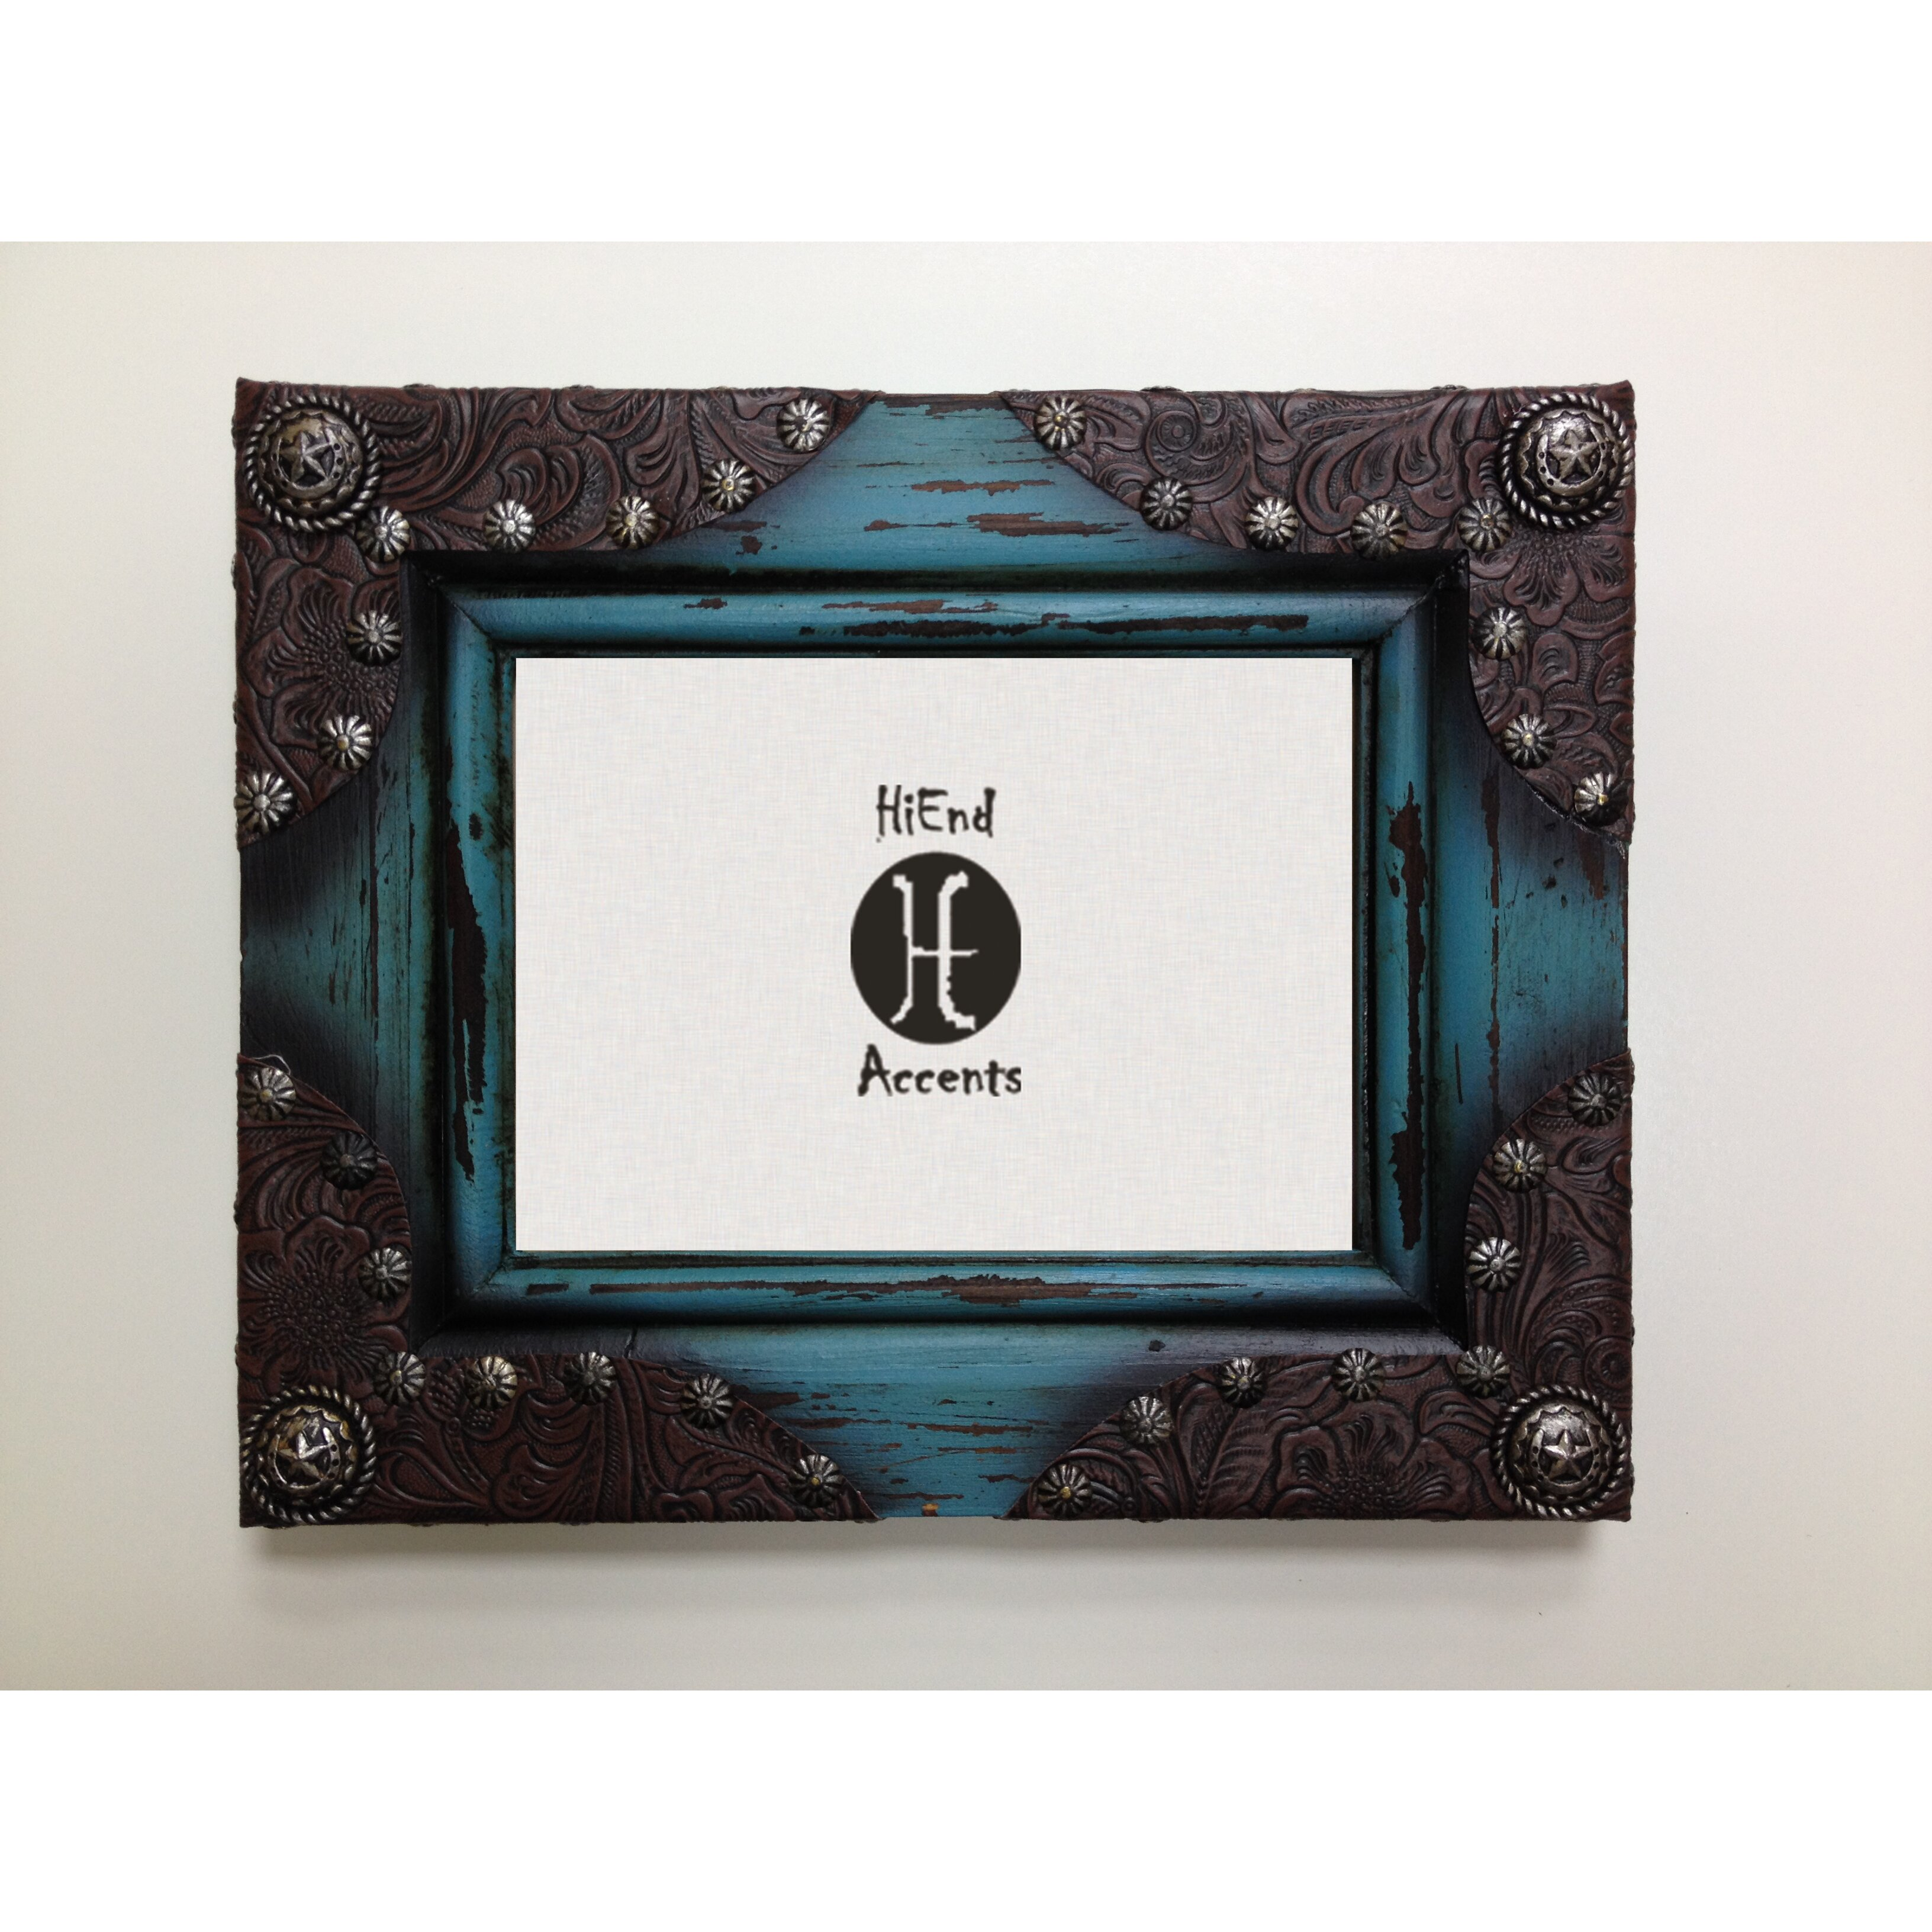 hiend accents 5 x 7 painted distressed wood picture frame reviews wayfair. Black Bedroom Furniture Sets. Home Design Ideas